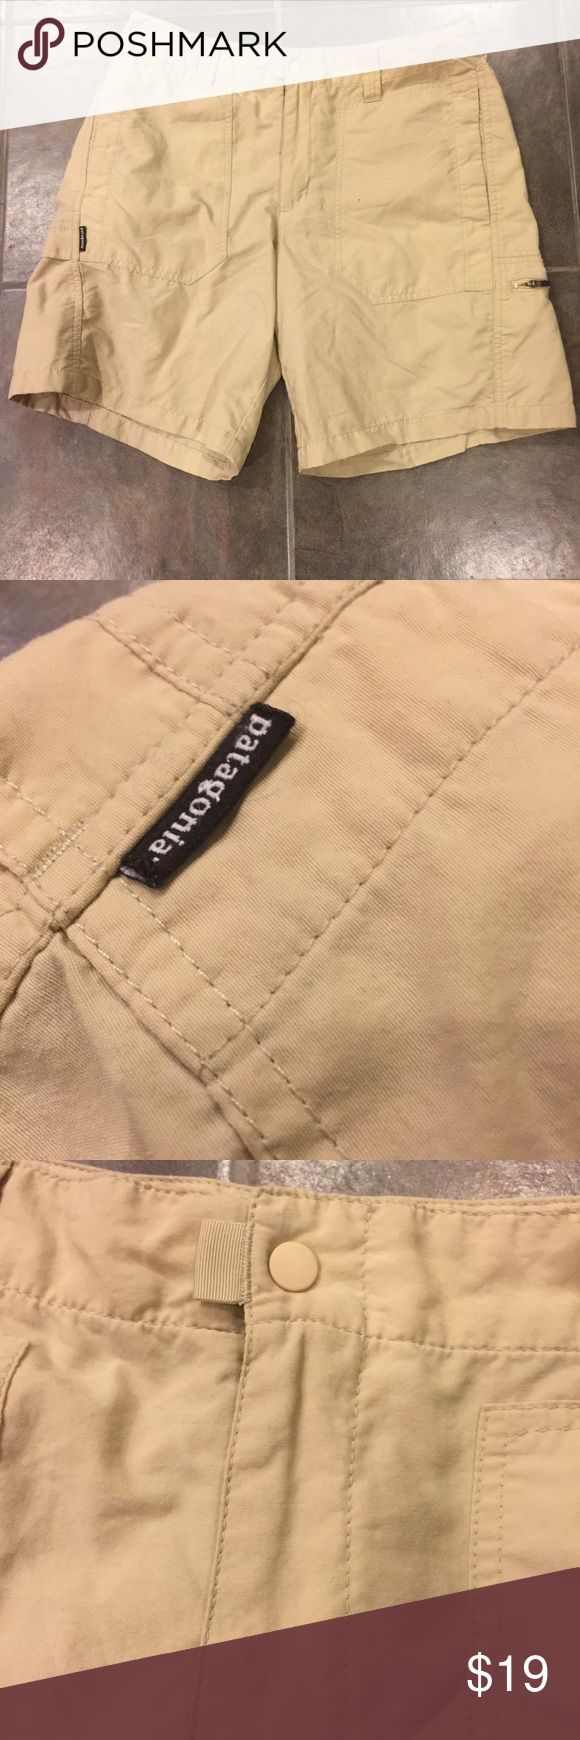 PATAGONIA Women's Khaki Colored Cargo Shorts Warmer weather is right around the corner. Wonderful Patagonia shorts in a lightweight material in a Khaki color! Excellent gently loved condition, no flaws! Size 8. Patagonia Shorts Cargos